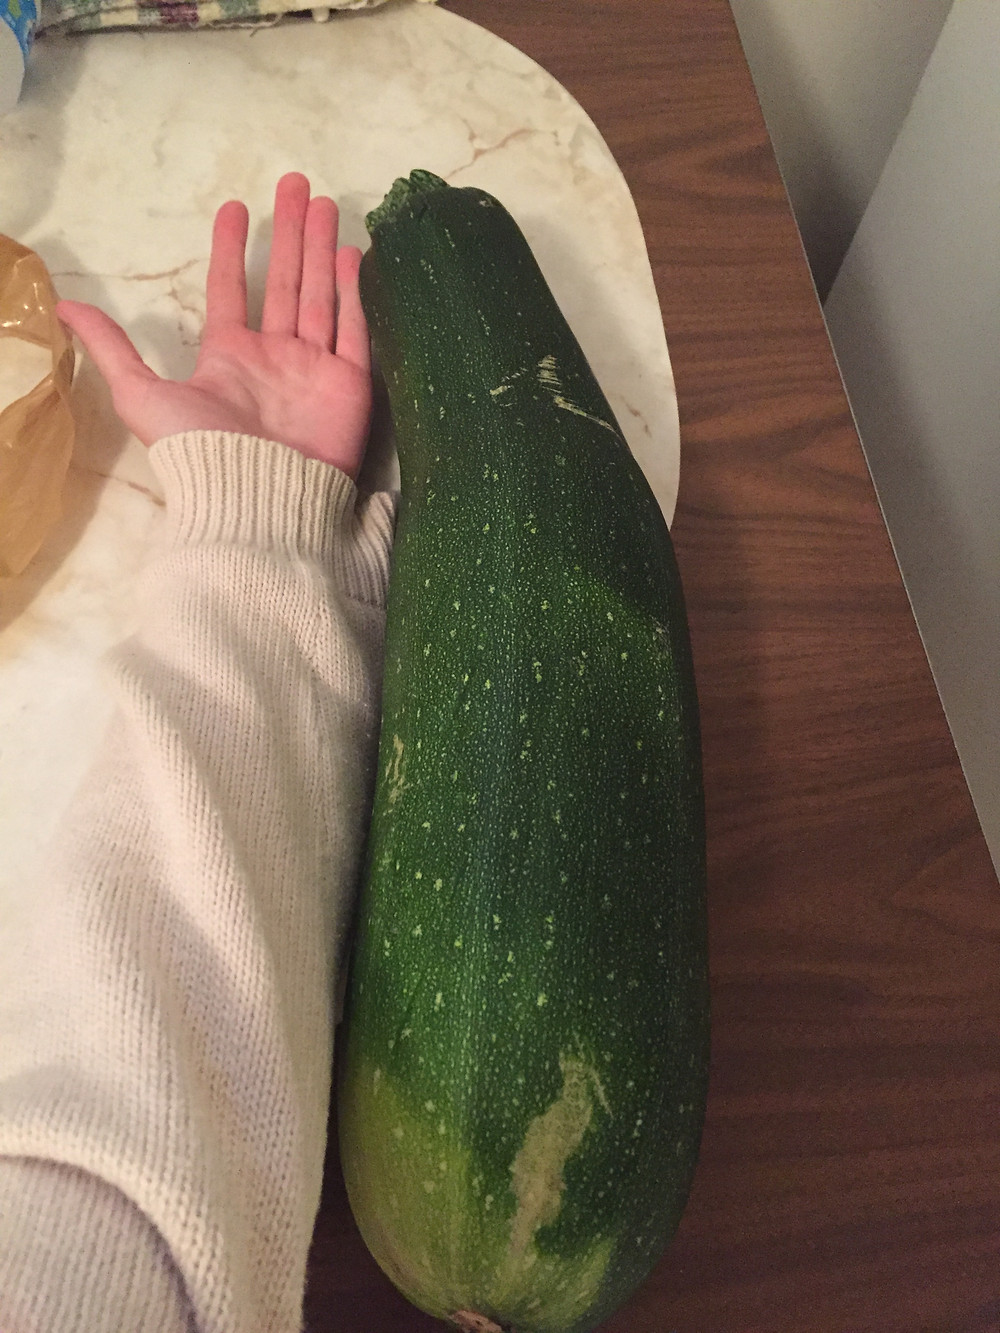 A comparison photo of my arm with my baka's zucchini.